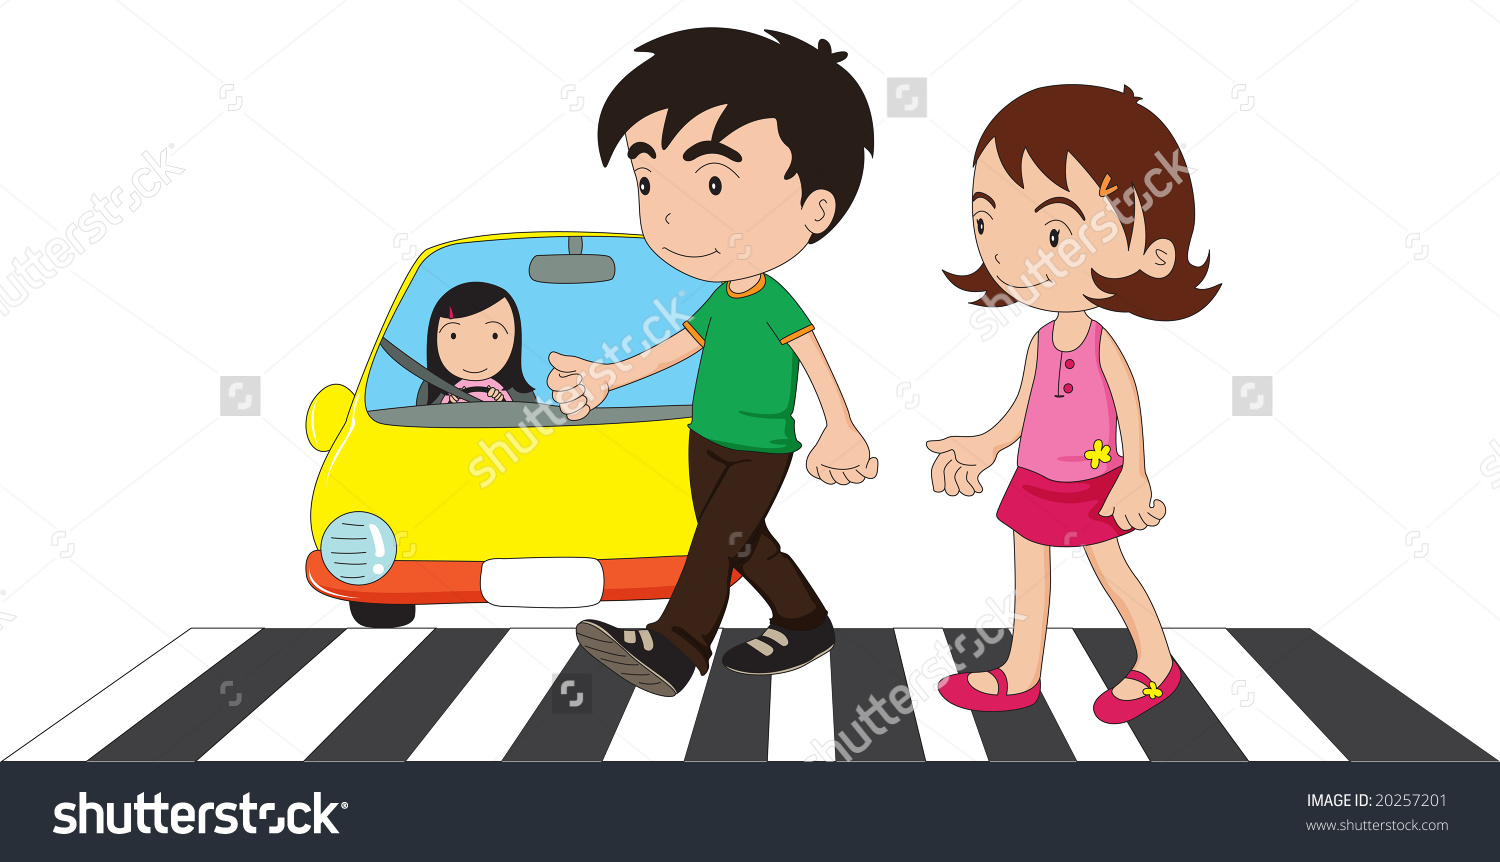 Zebra clipart road Safely crossing Road Crossing collection